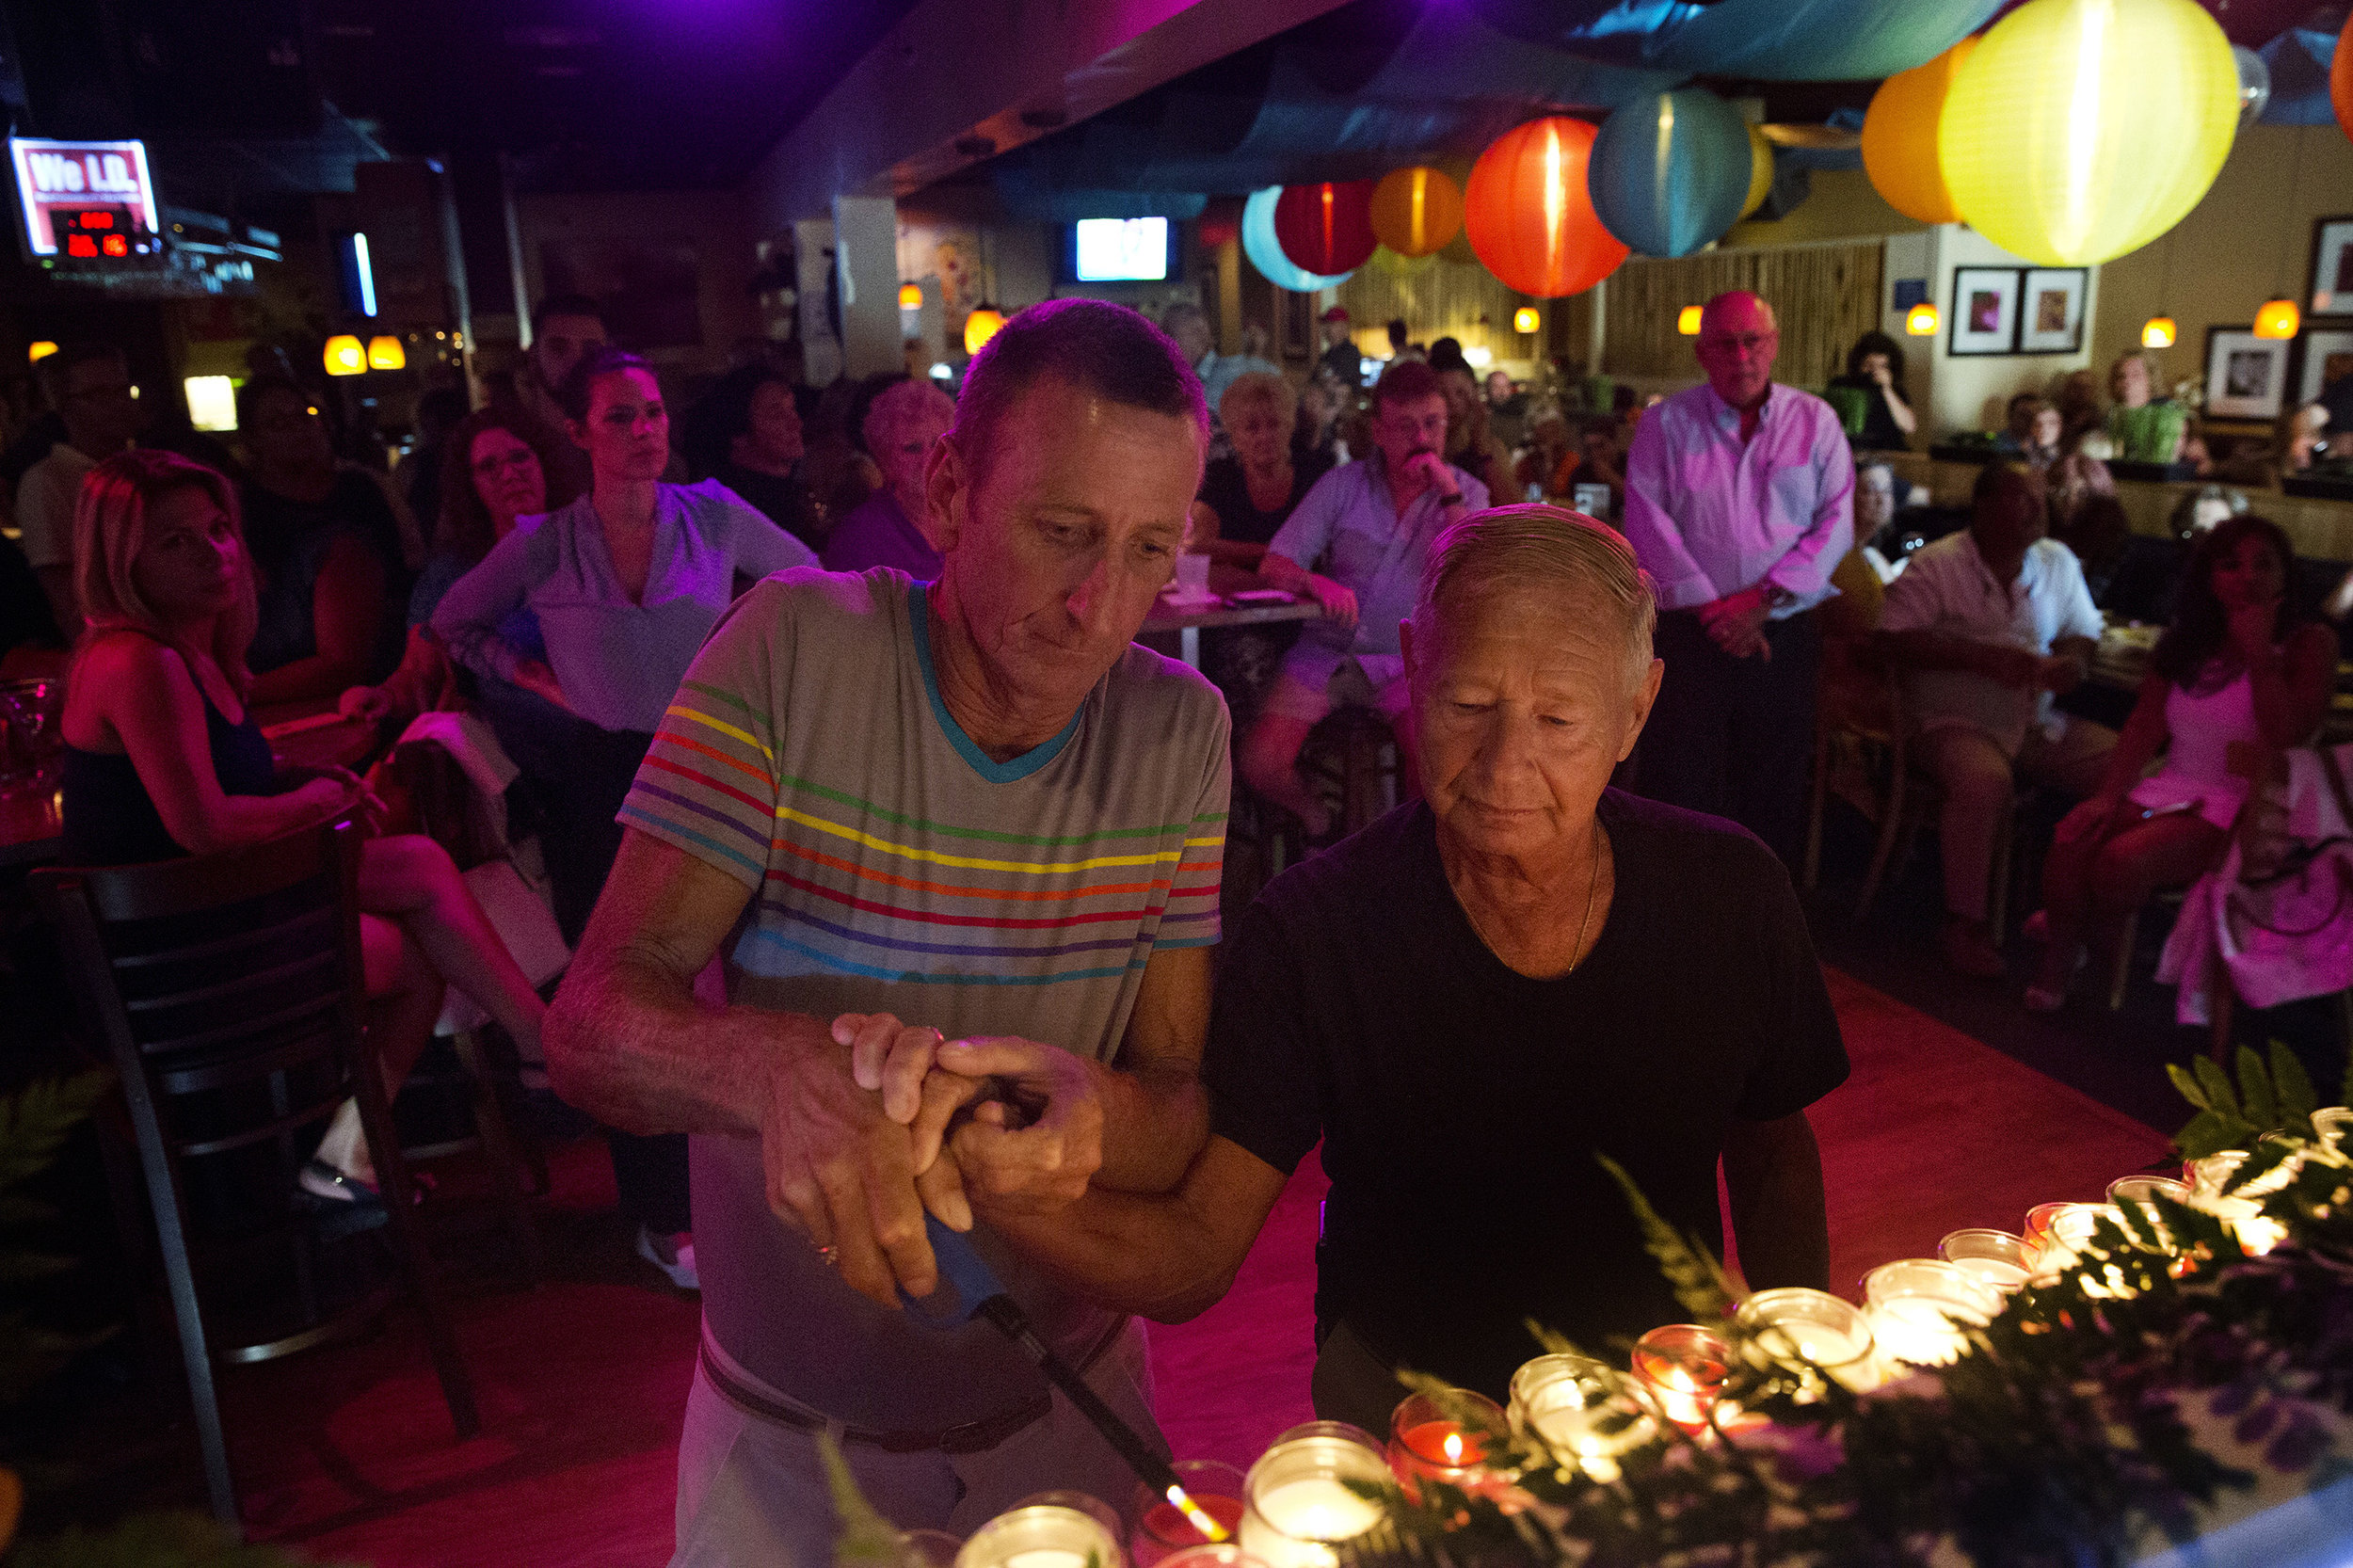 Mike Robichaud, 52, left, and Frank Cardone, 78, both of Naples, light a candle for one of the victims of the Orlando shooting at a vigil held at Bambusa Bar and Grill on June 16, 2016 in Naples, Florida. Besides lighting 49 candles to honor each of the victims, Bambusa also hosted a fundraiser auction to raise money for the survivors and the victim's families.